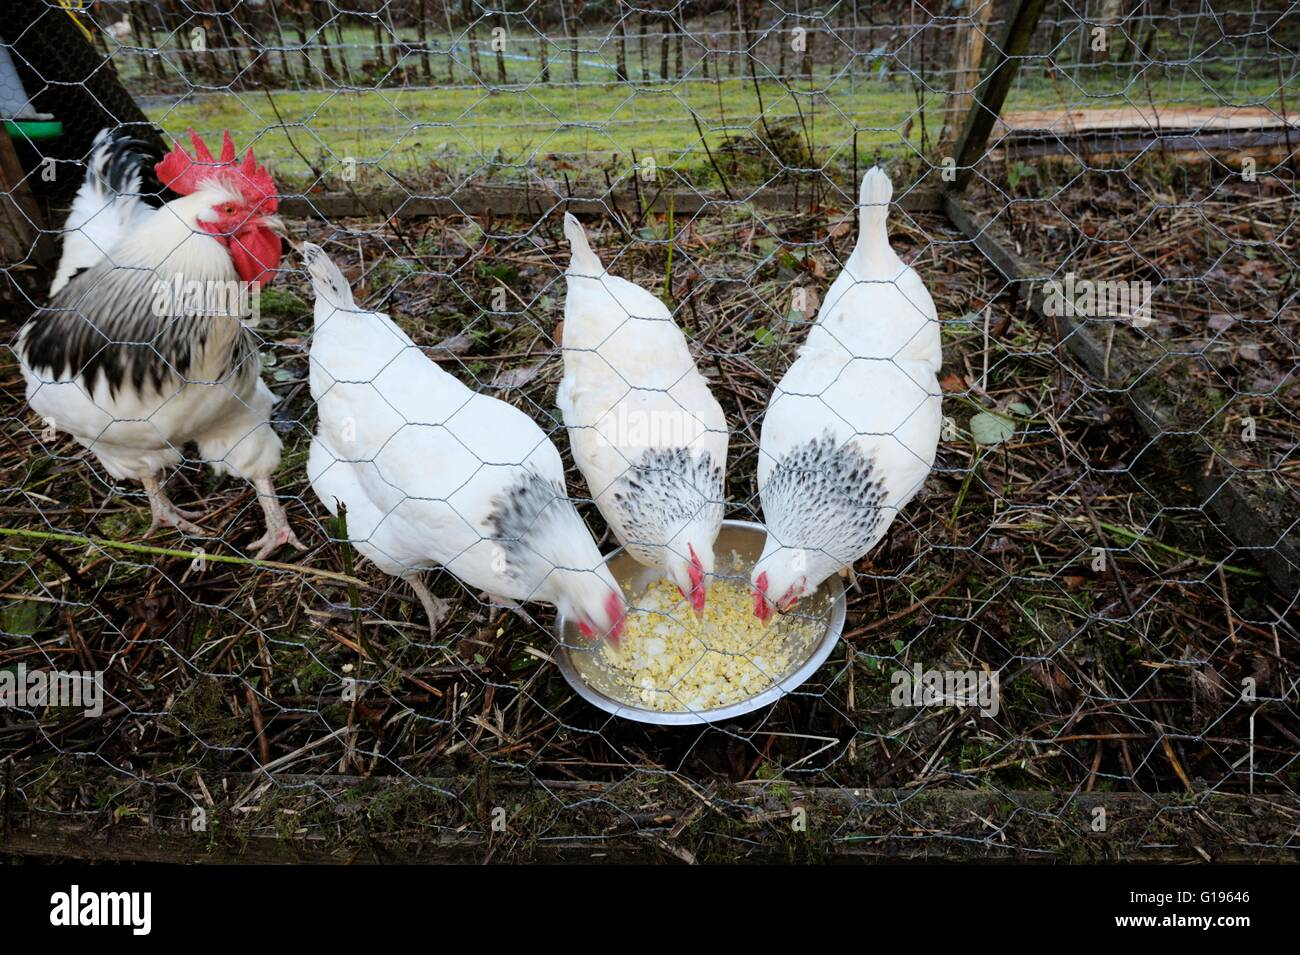 Pure breed Light Sussex hens and rooster feeeding on egg and potato, Wales, UK Stock Photo